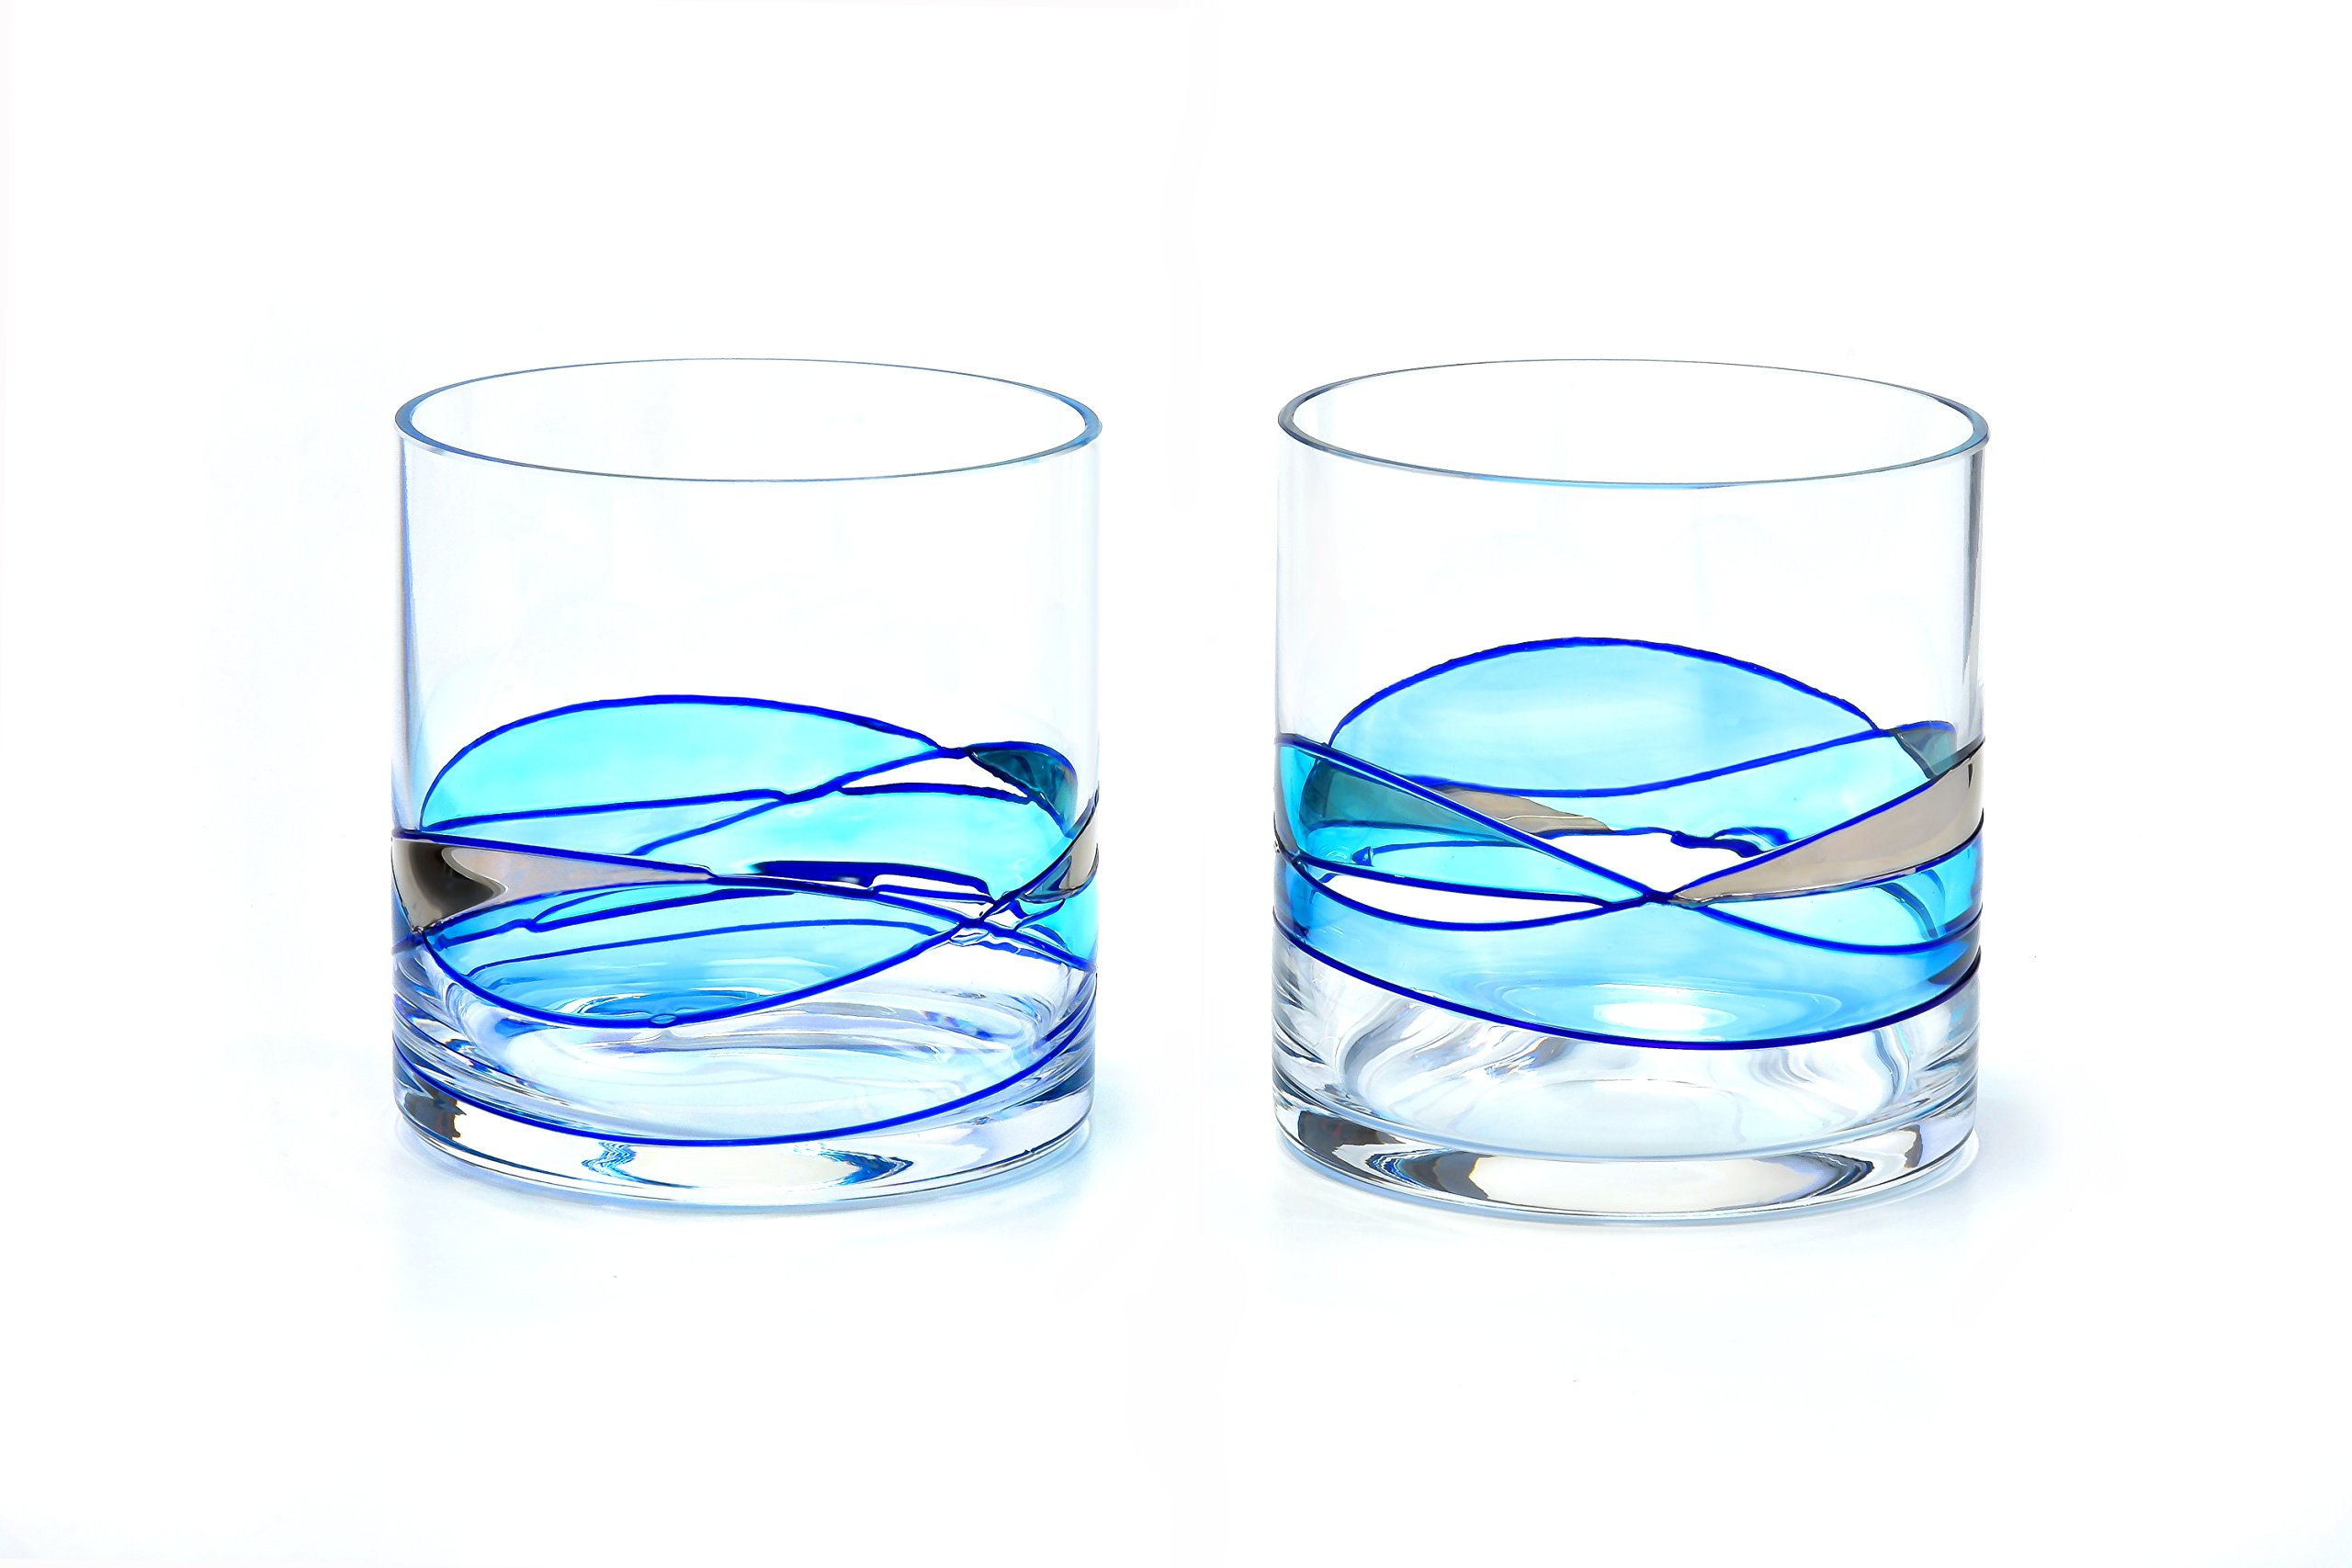 ANTONI BARCELONA Whiskey Glass 12oz - Unique Lowball Crystal, Drinking Glasses, Old Fashioned Glasses, Bourbon, Scotch & Rocks Glass – Unique Gifts - Set 2 - For Men, Women, Dad, Him, Groom (2)